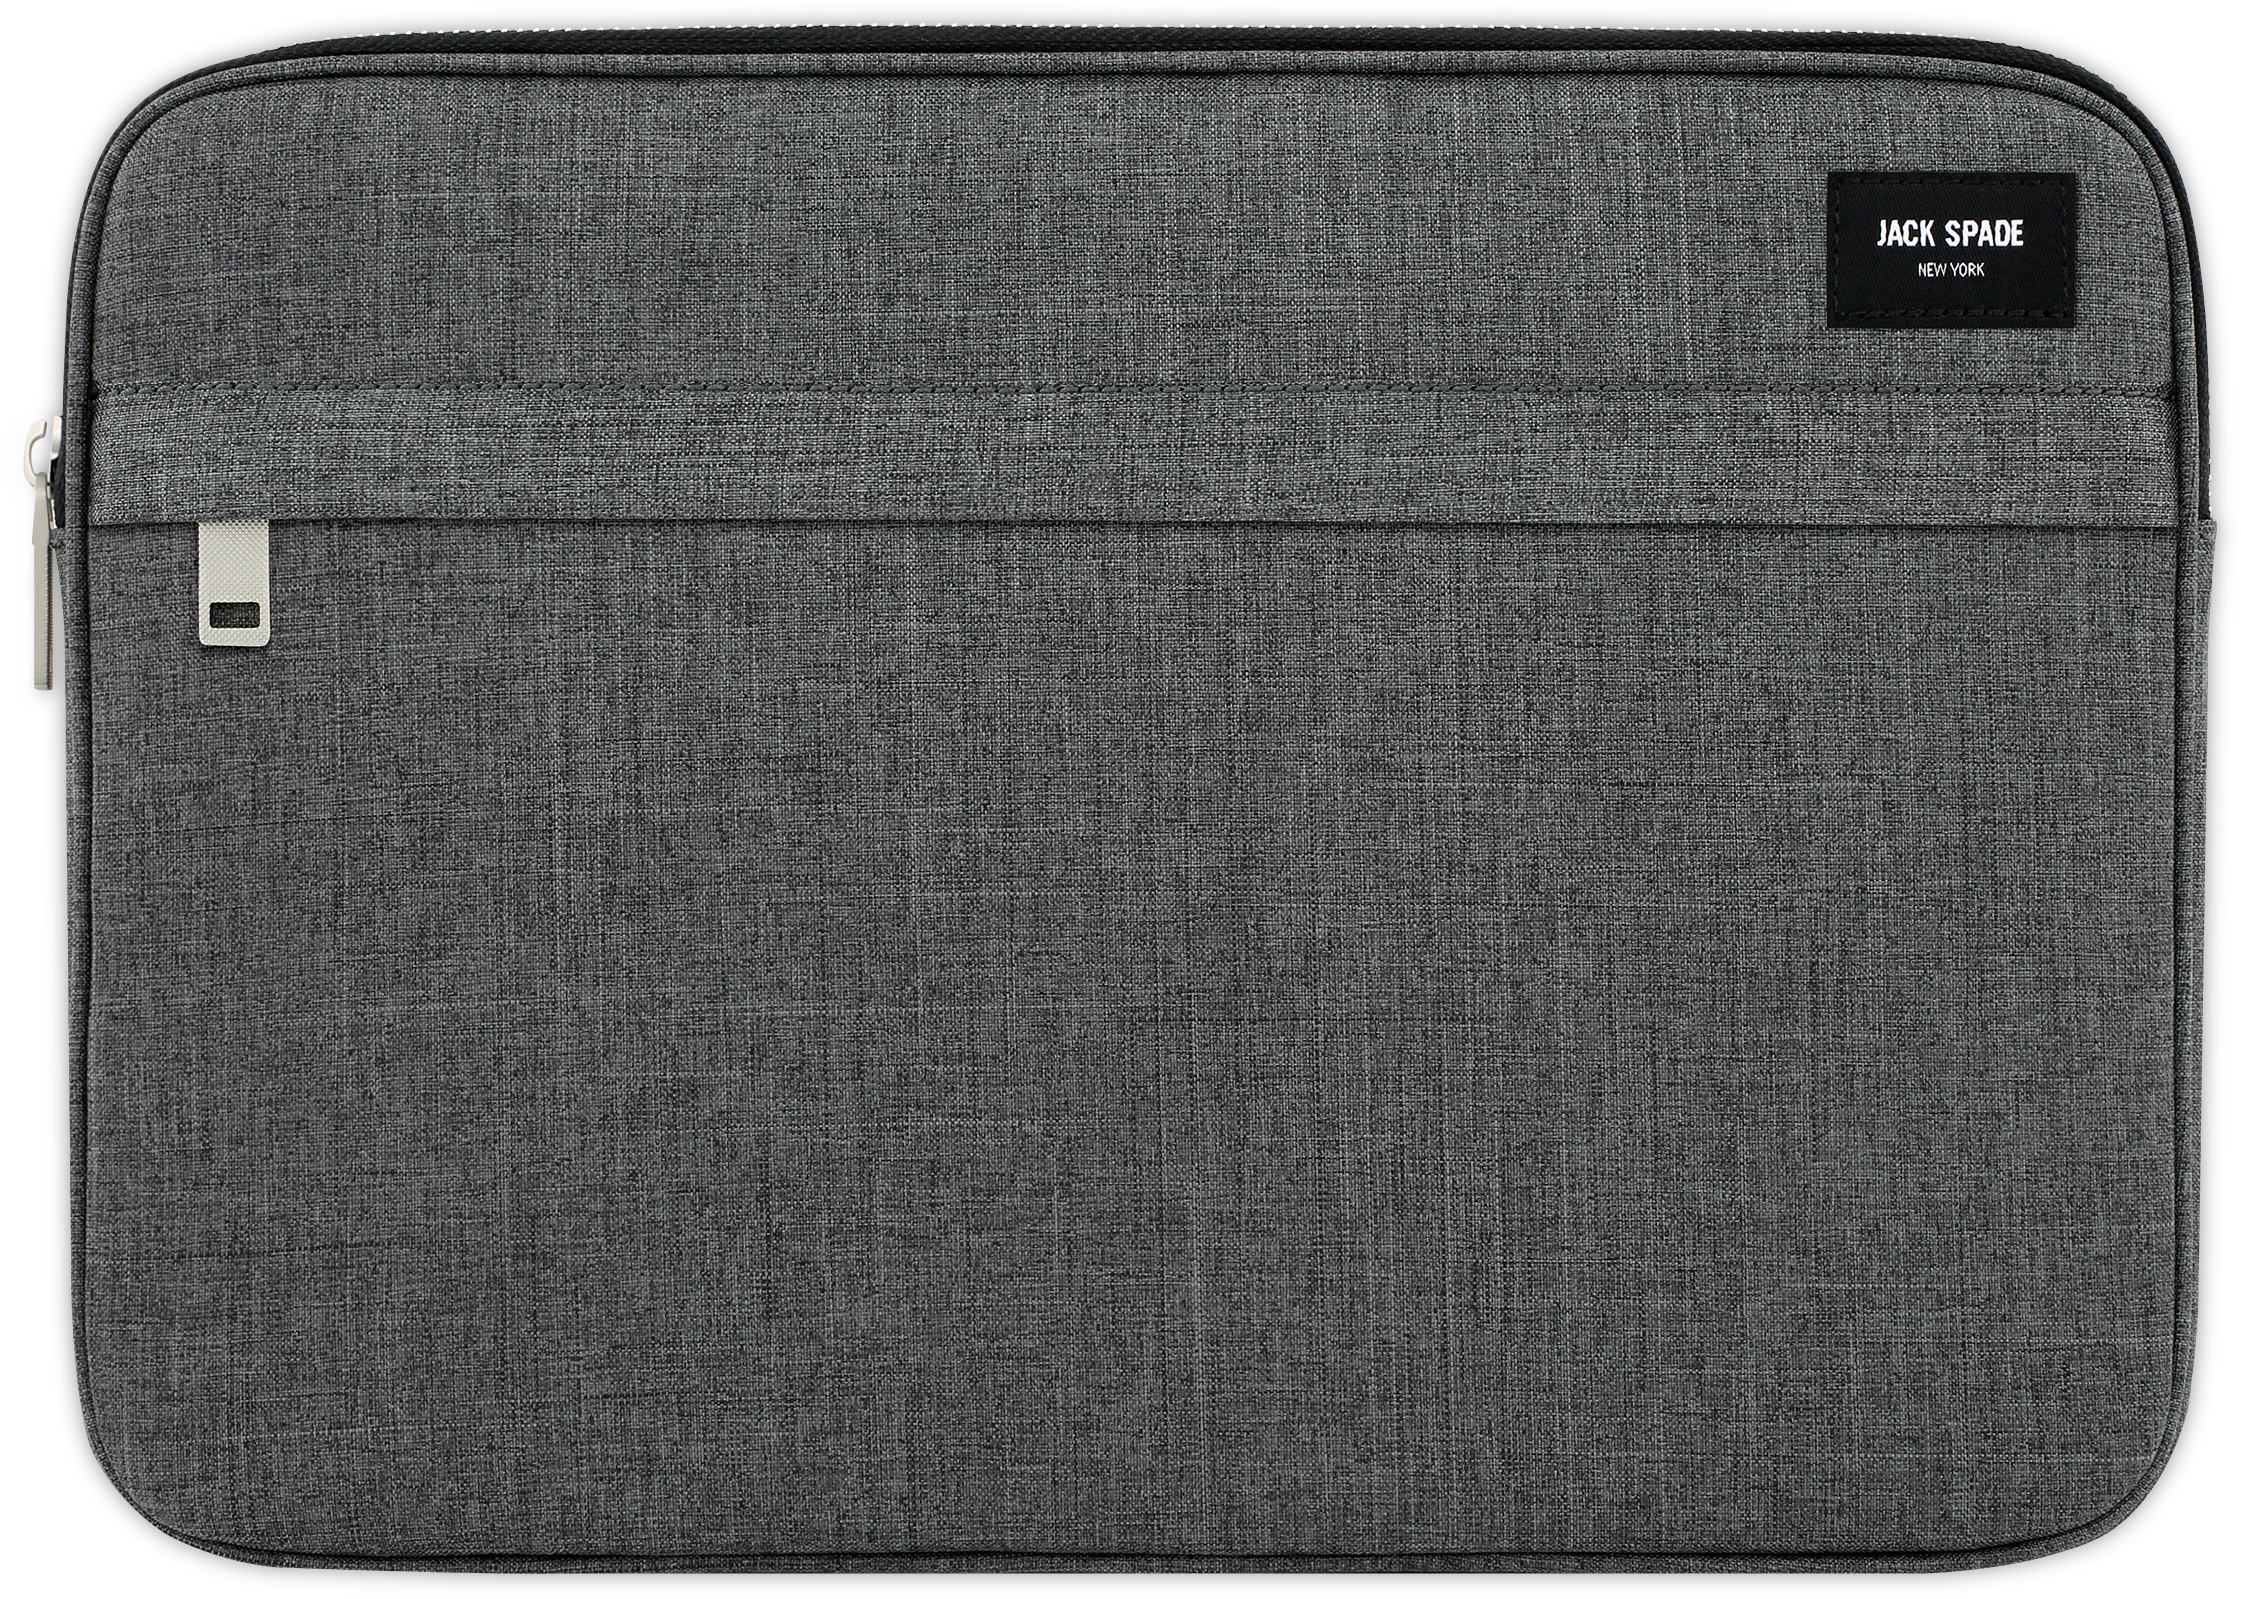 Jack Spade Zip Sleeve for Surface (Tech Oxford Gray)